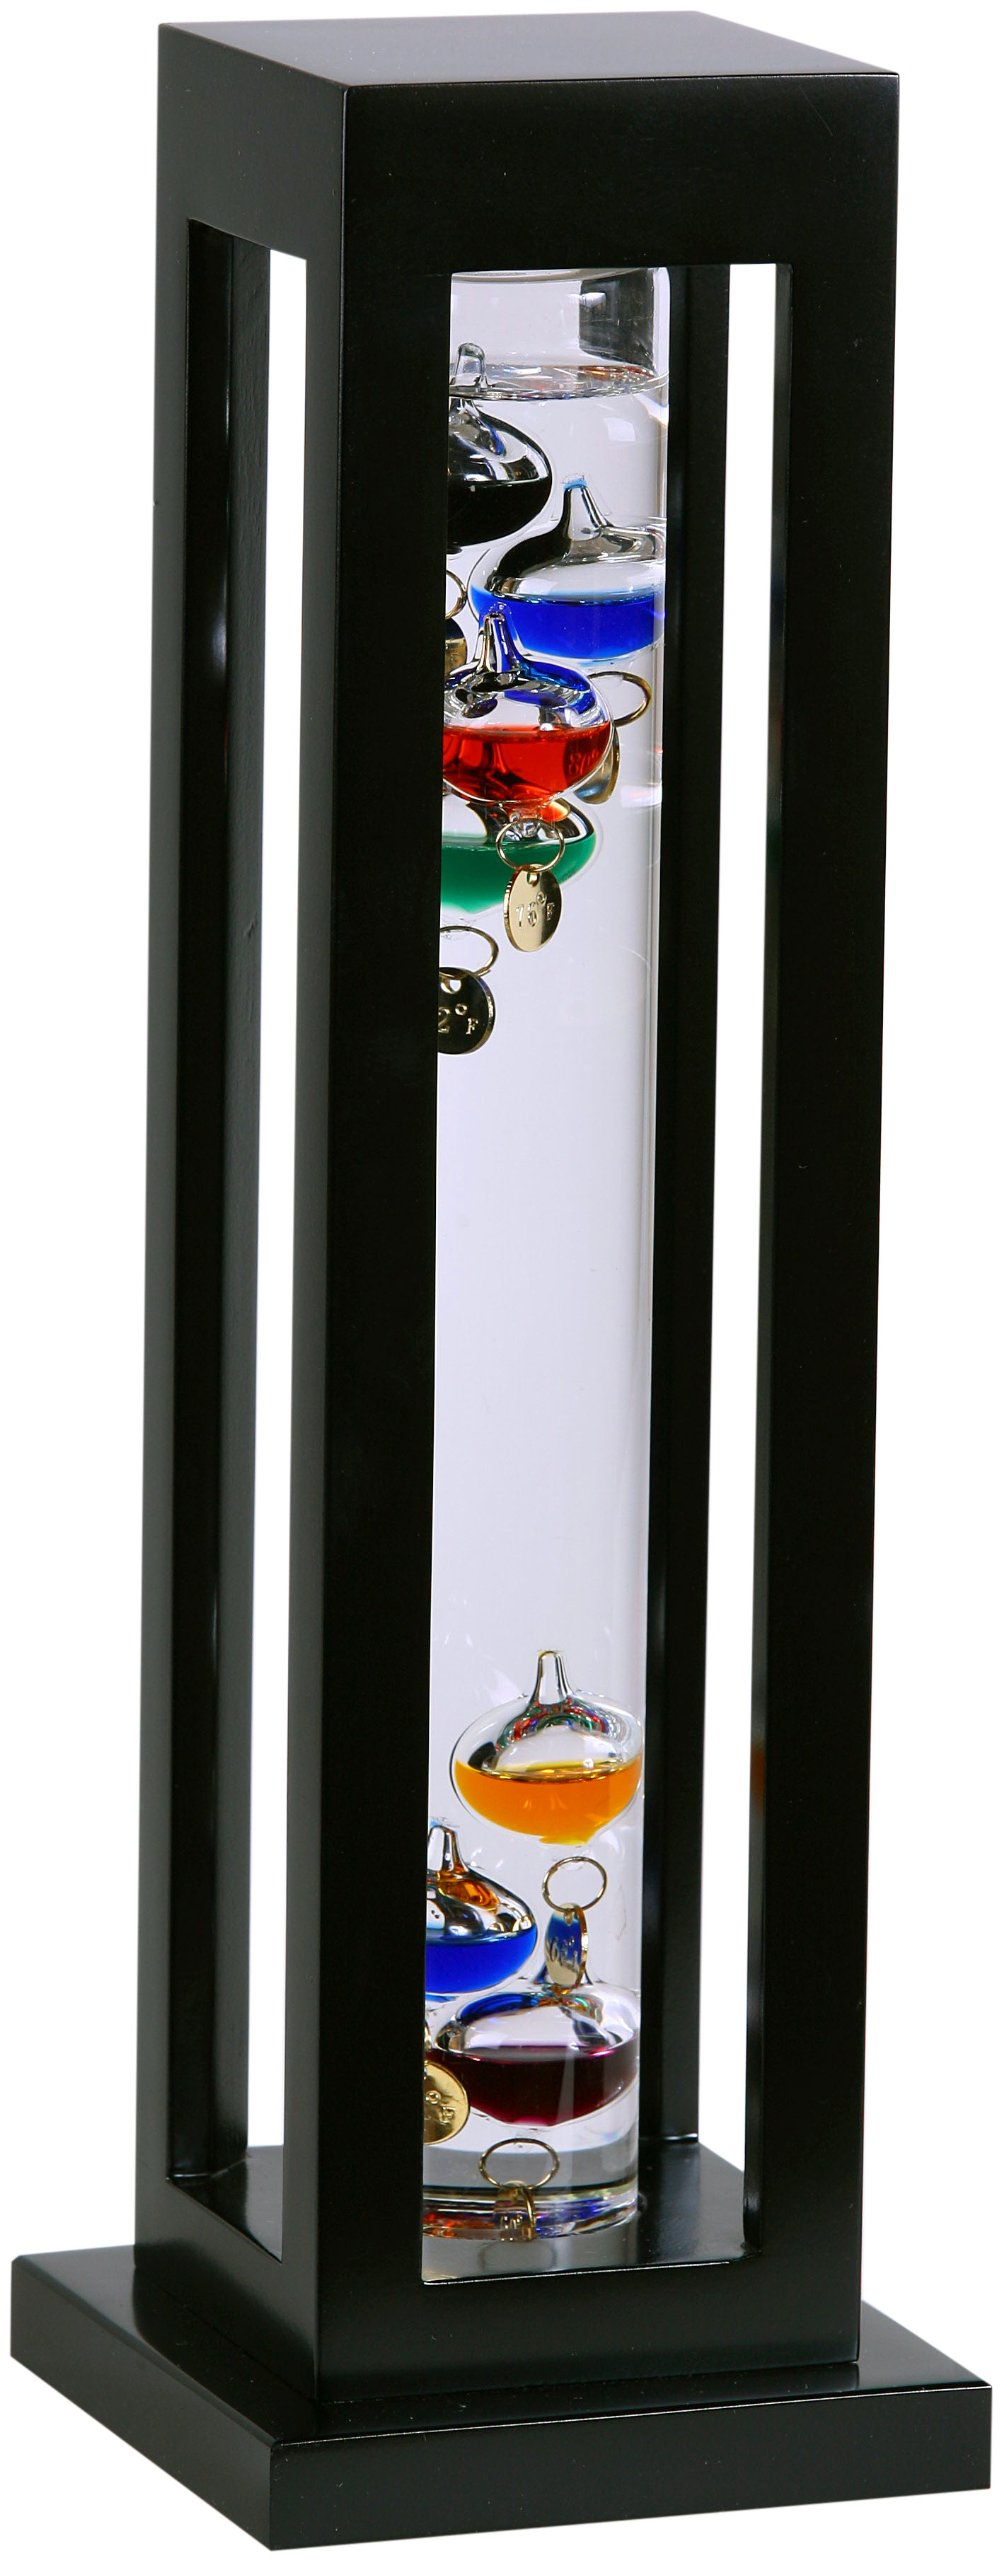 G W Schleidt YG824-B Galileo Thermometer Square Black Finish Multicolored